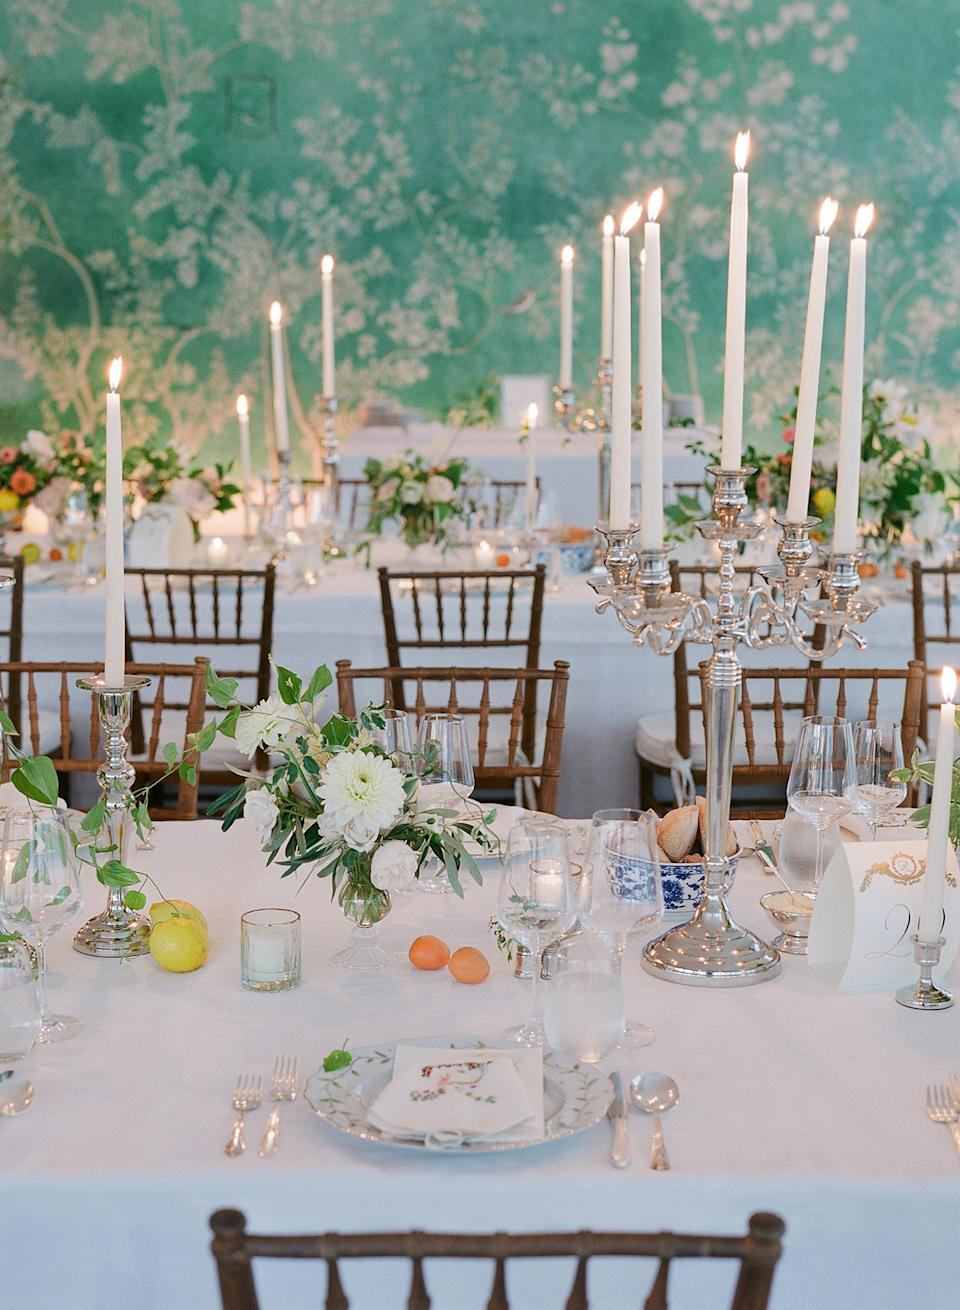 The dinner tables were filled with overgrown floral arrangements with pops of seasonal citrus fruits inspired by still-life paintings.